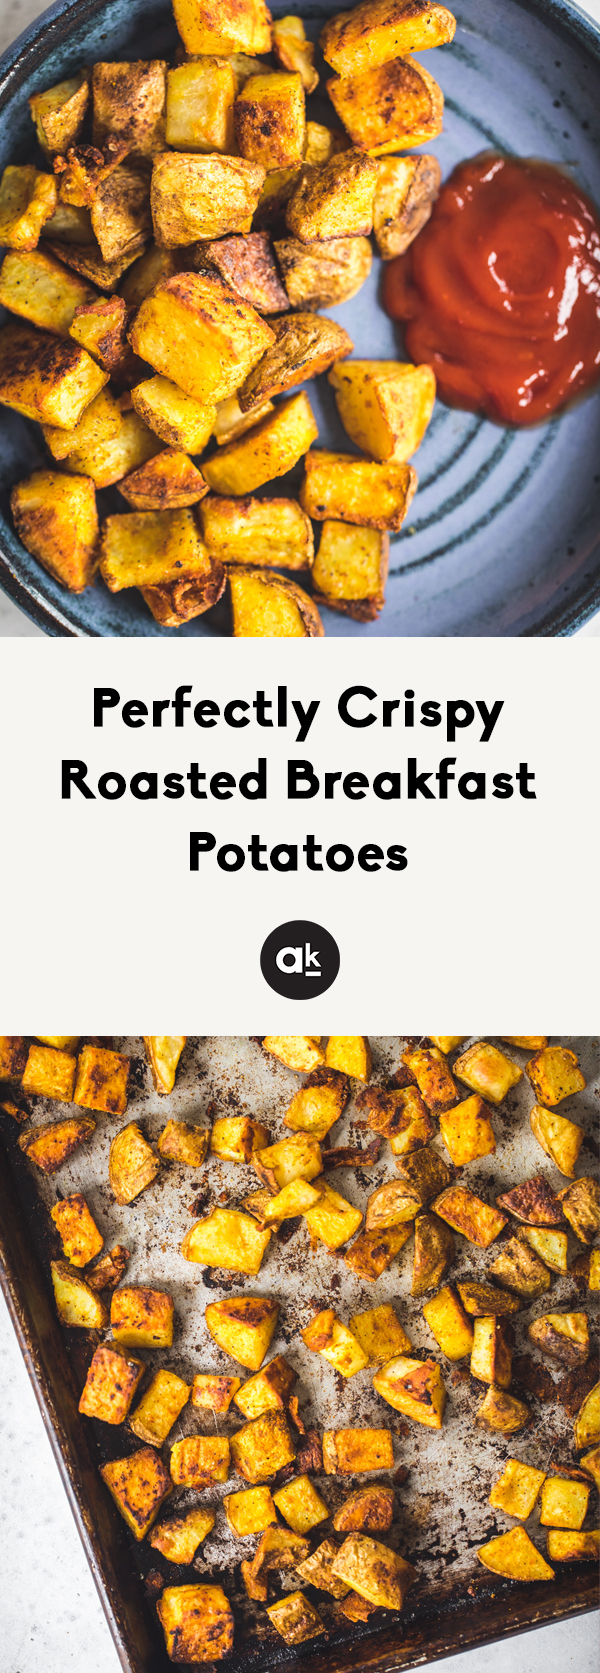 Delicious crispy breakfast potatoes roasted to perfection in the oven. Heavily flavored with spices like turmeric, garlic and cumin. Wonderful served with eggs, avocado, sausage or bacon!